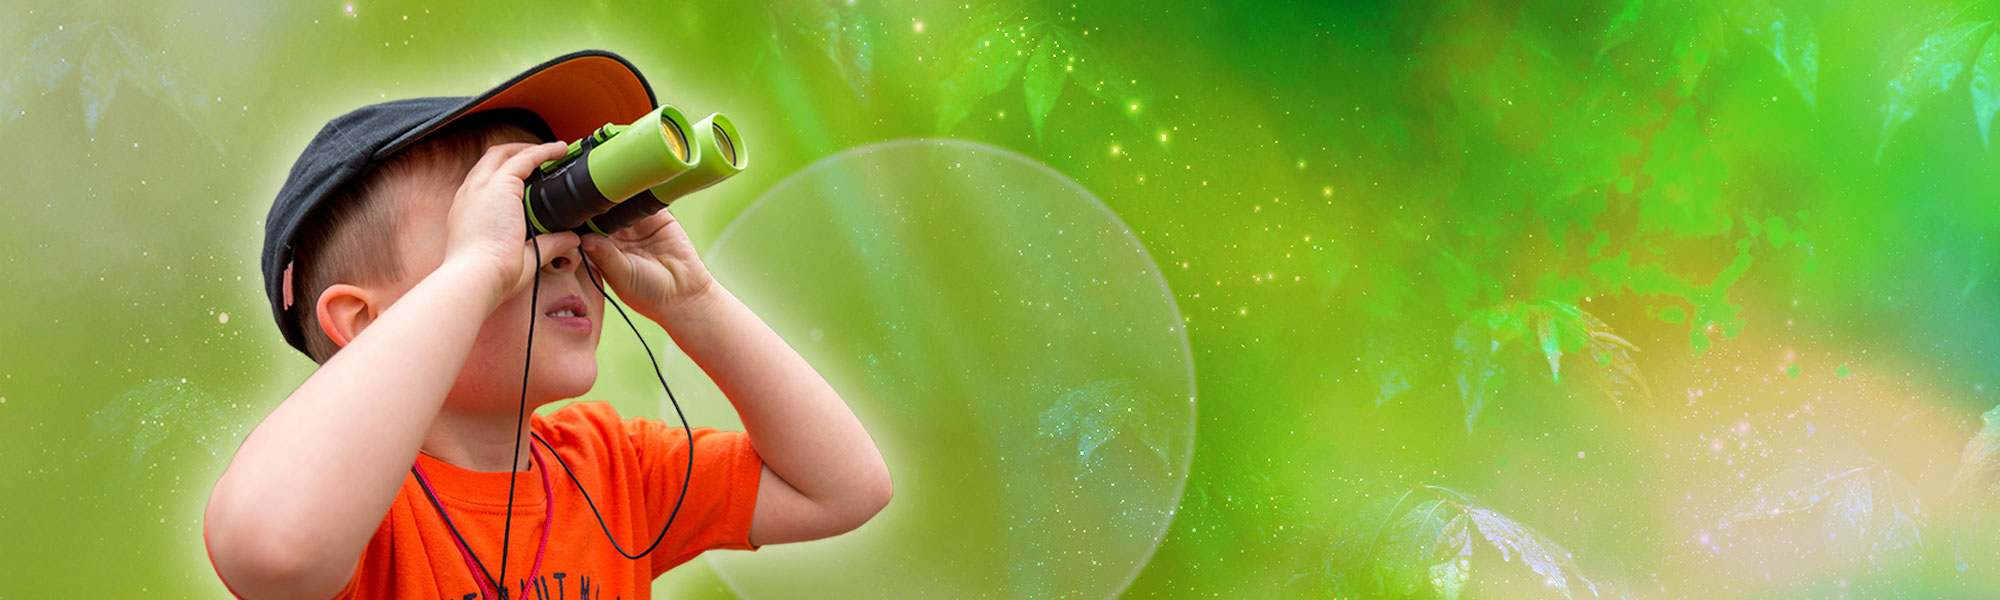 Young boy looking out with binoculars with a green abstract background